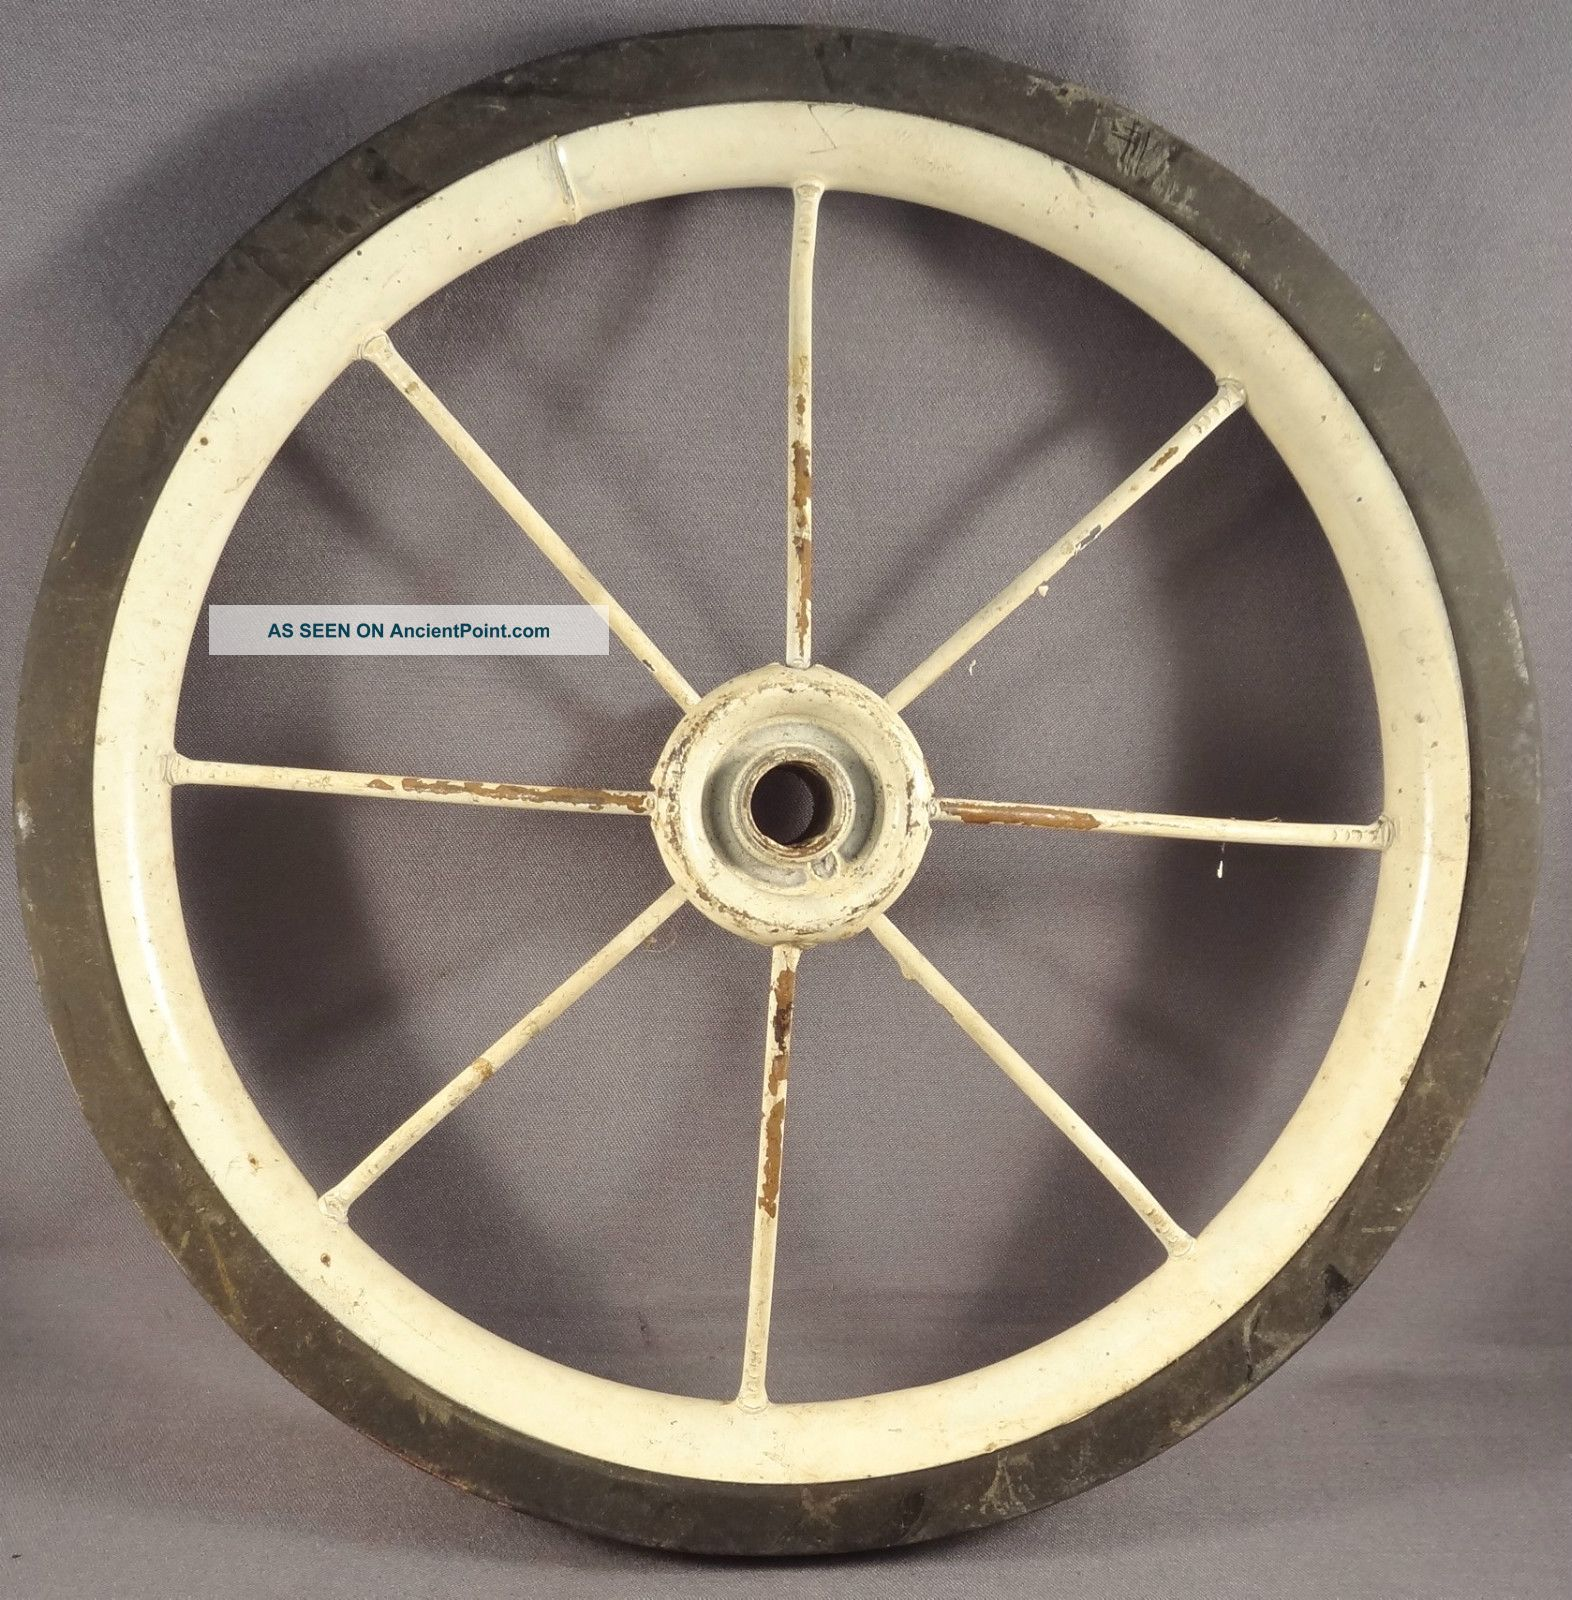 7.  25 Inch Wheel Semi Pheumatic Tire For Vintage Trike Tricycle Baby Carriage Nos Baby Carriages & Buggies photo